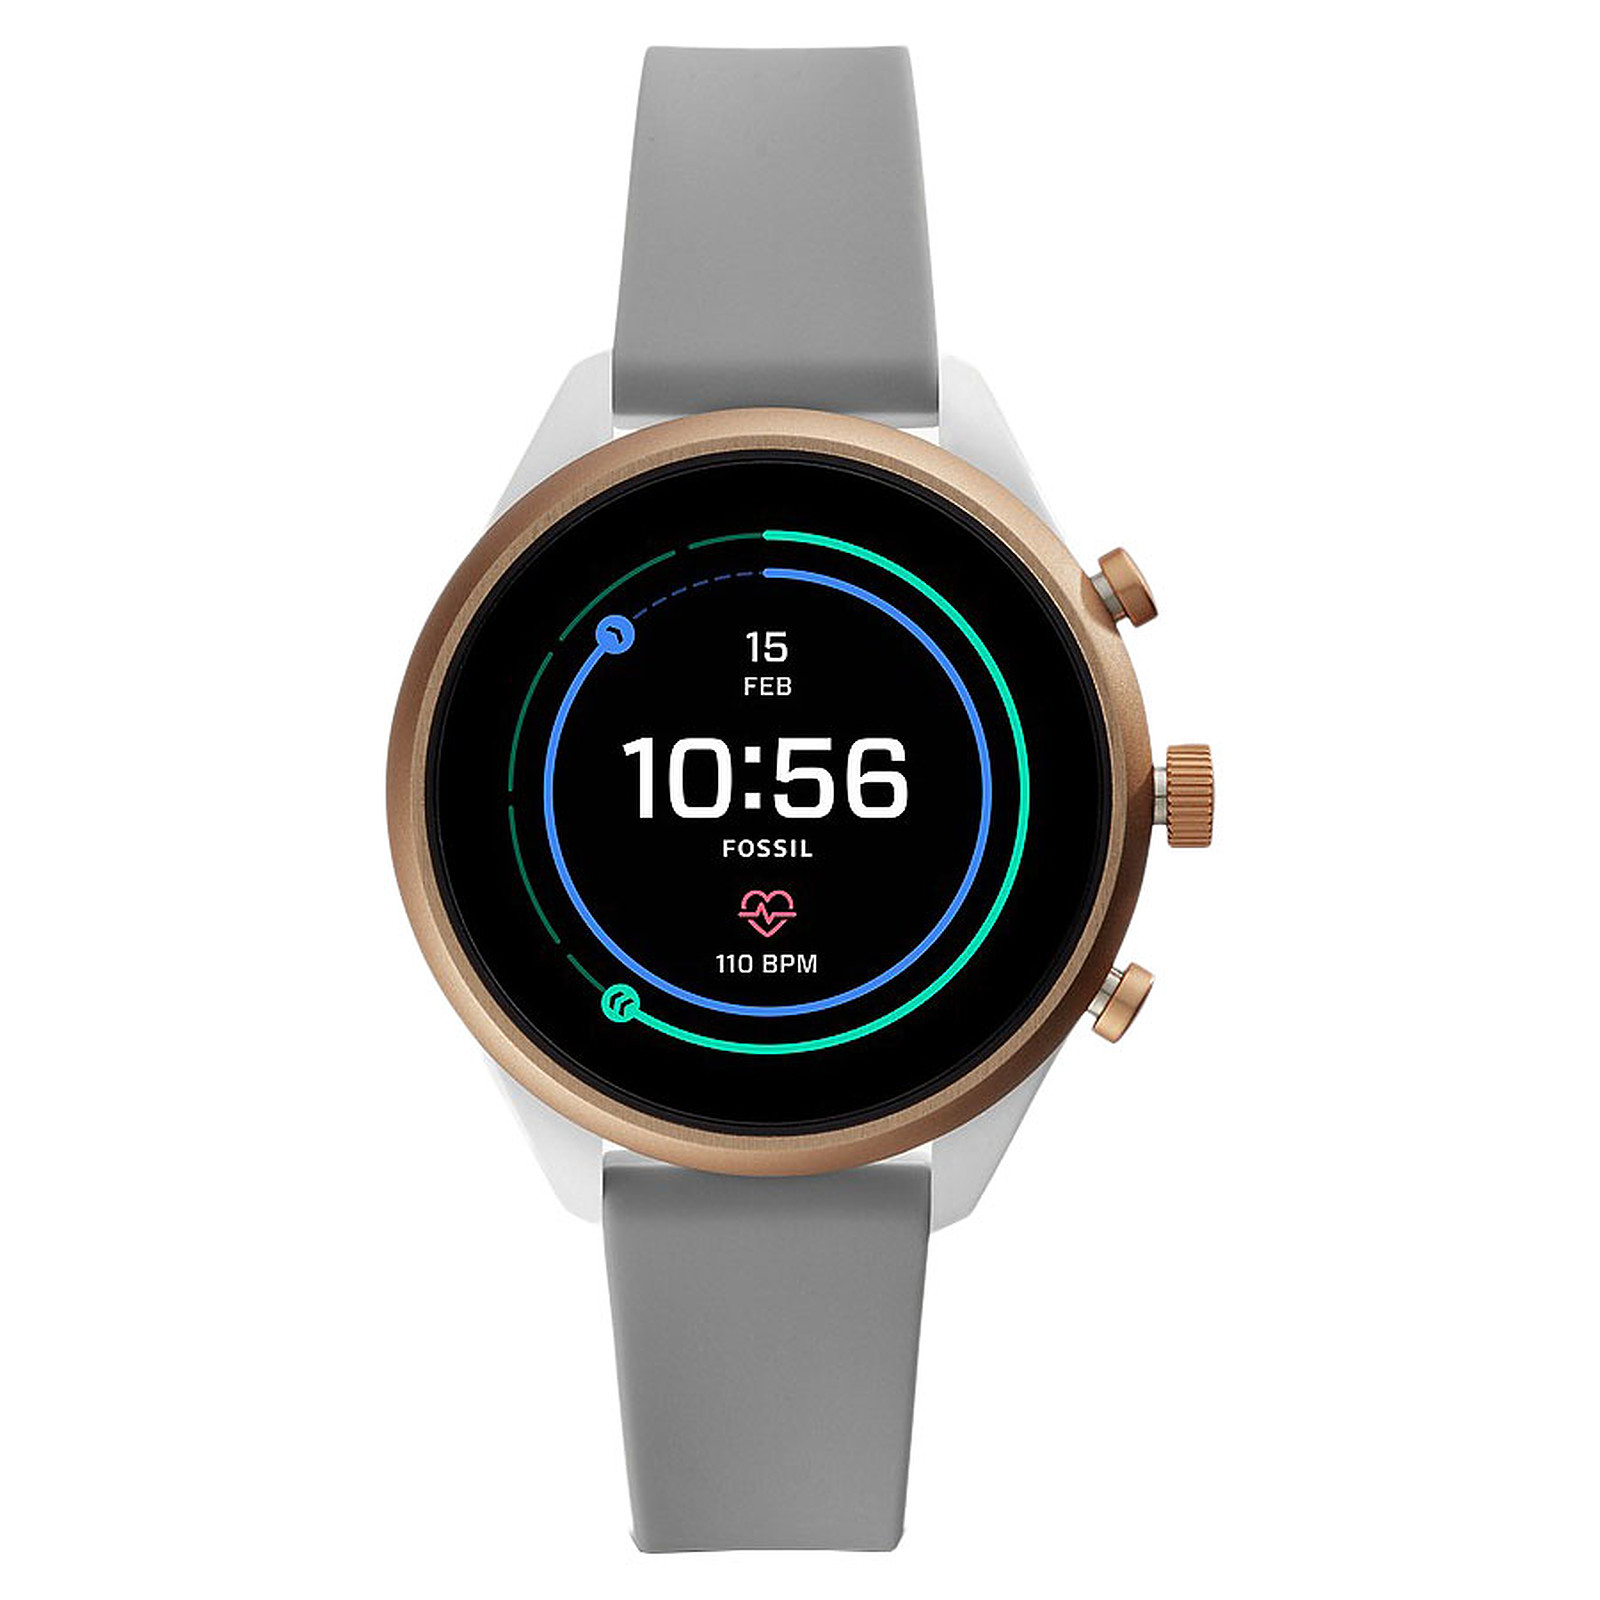 Fossil Sport 41 Smartwatch (41 mm / Silicona / Gris)